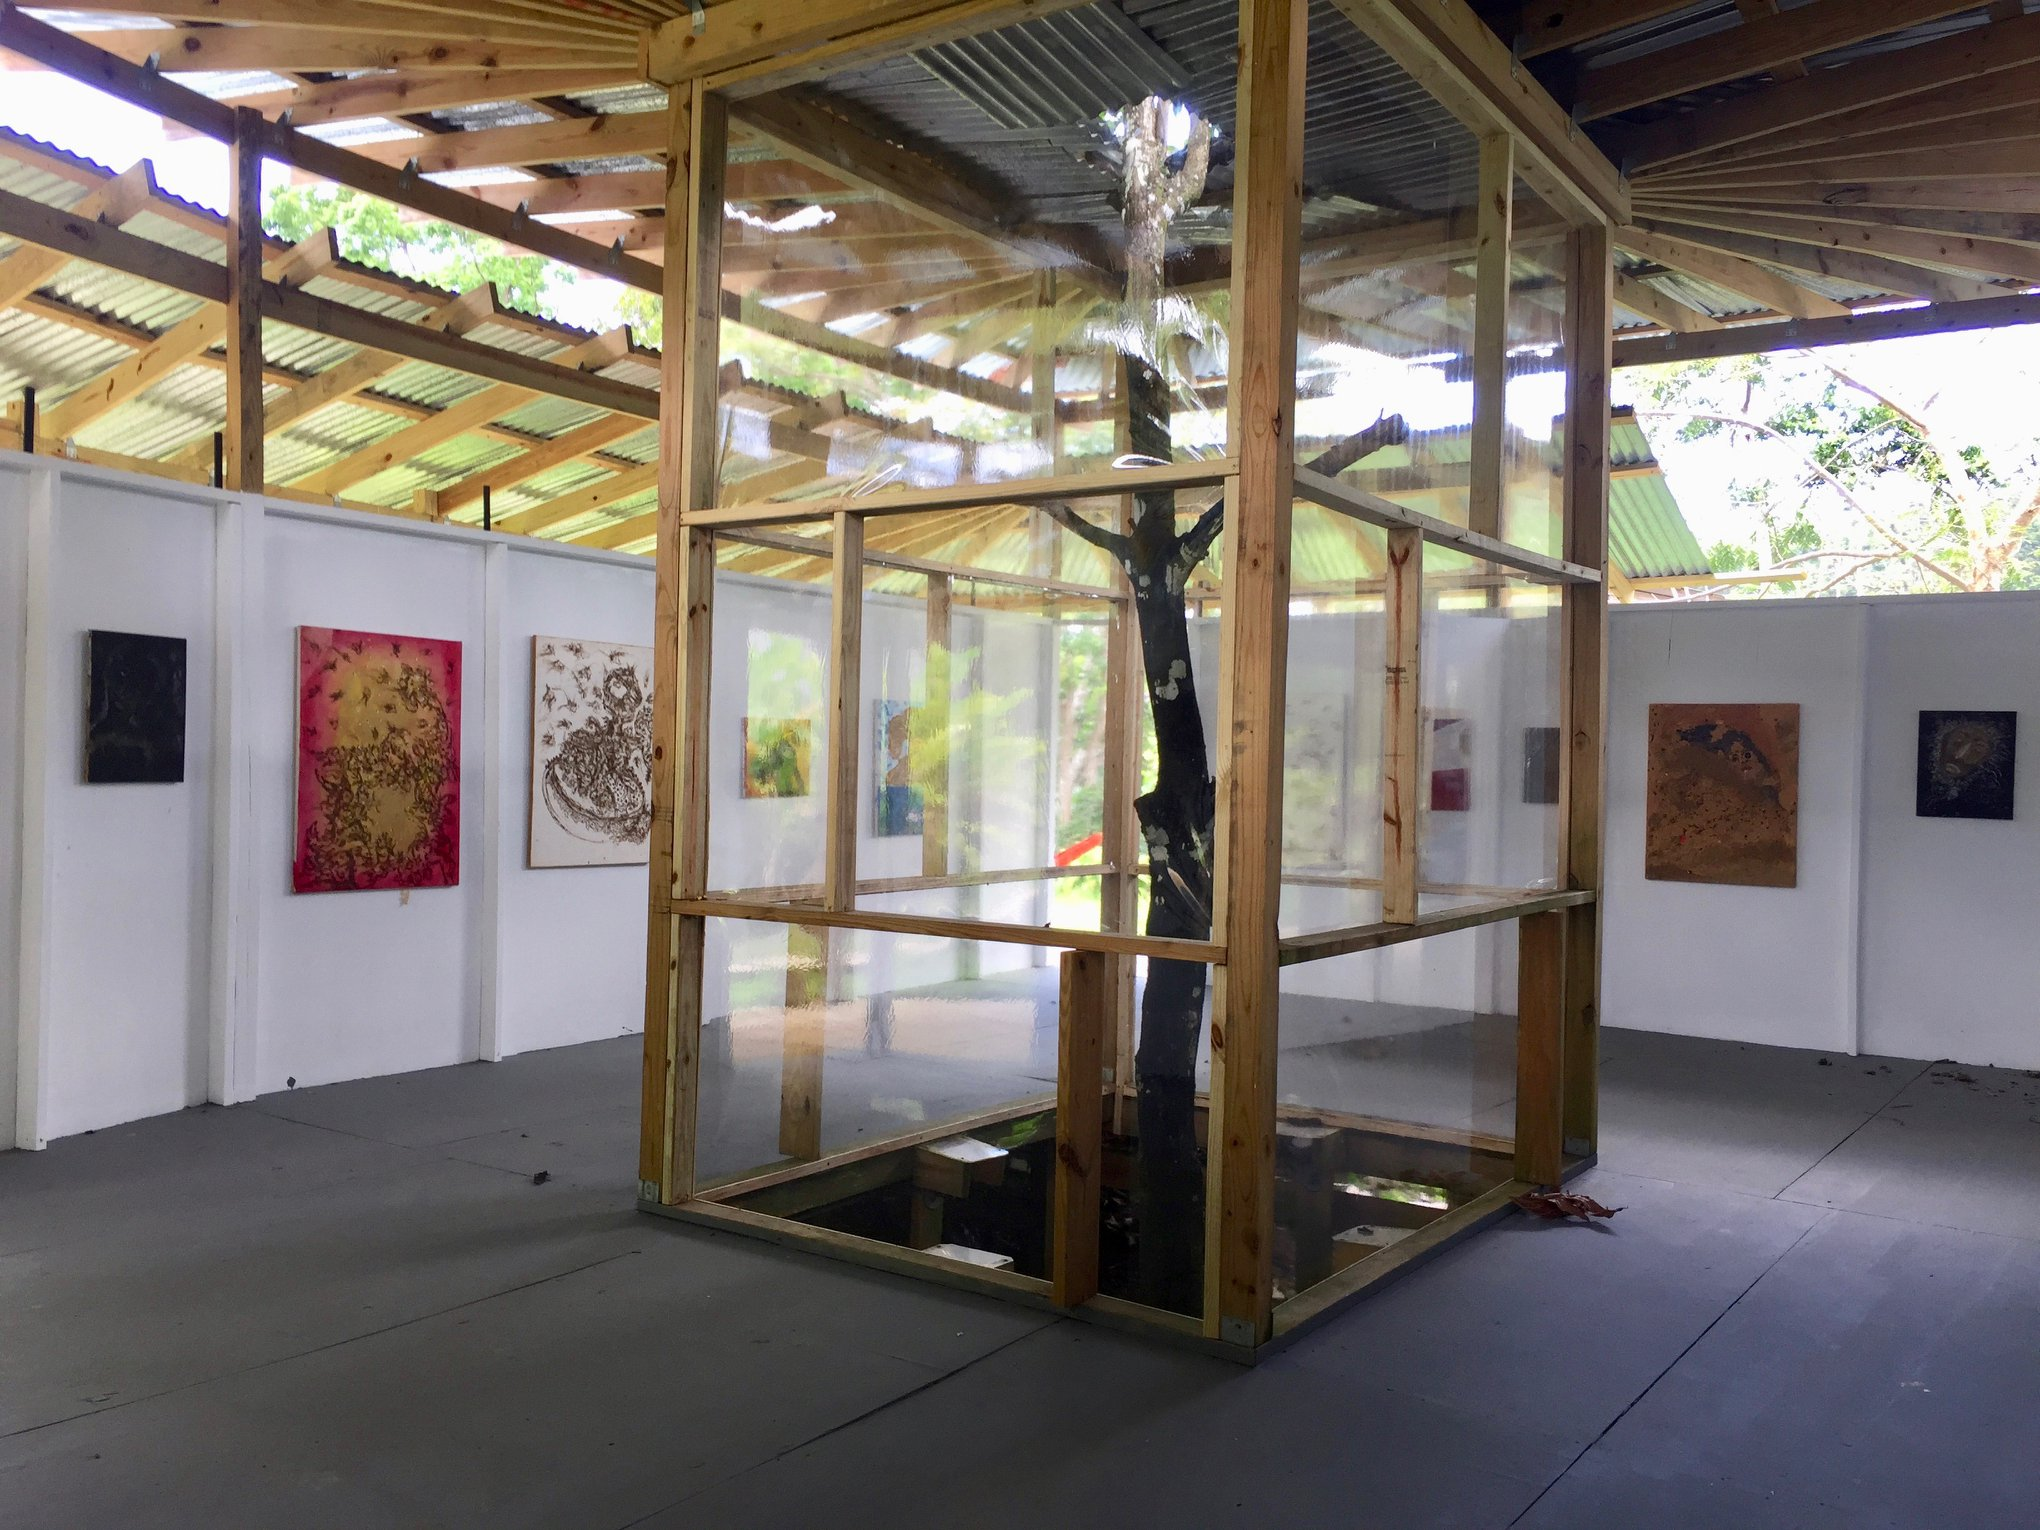 Papo Colo_Pangea Art Republic_Artist Studio in the Rainforest_Pana House_Captive Tree.jpg